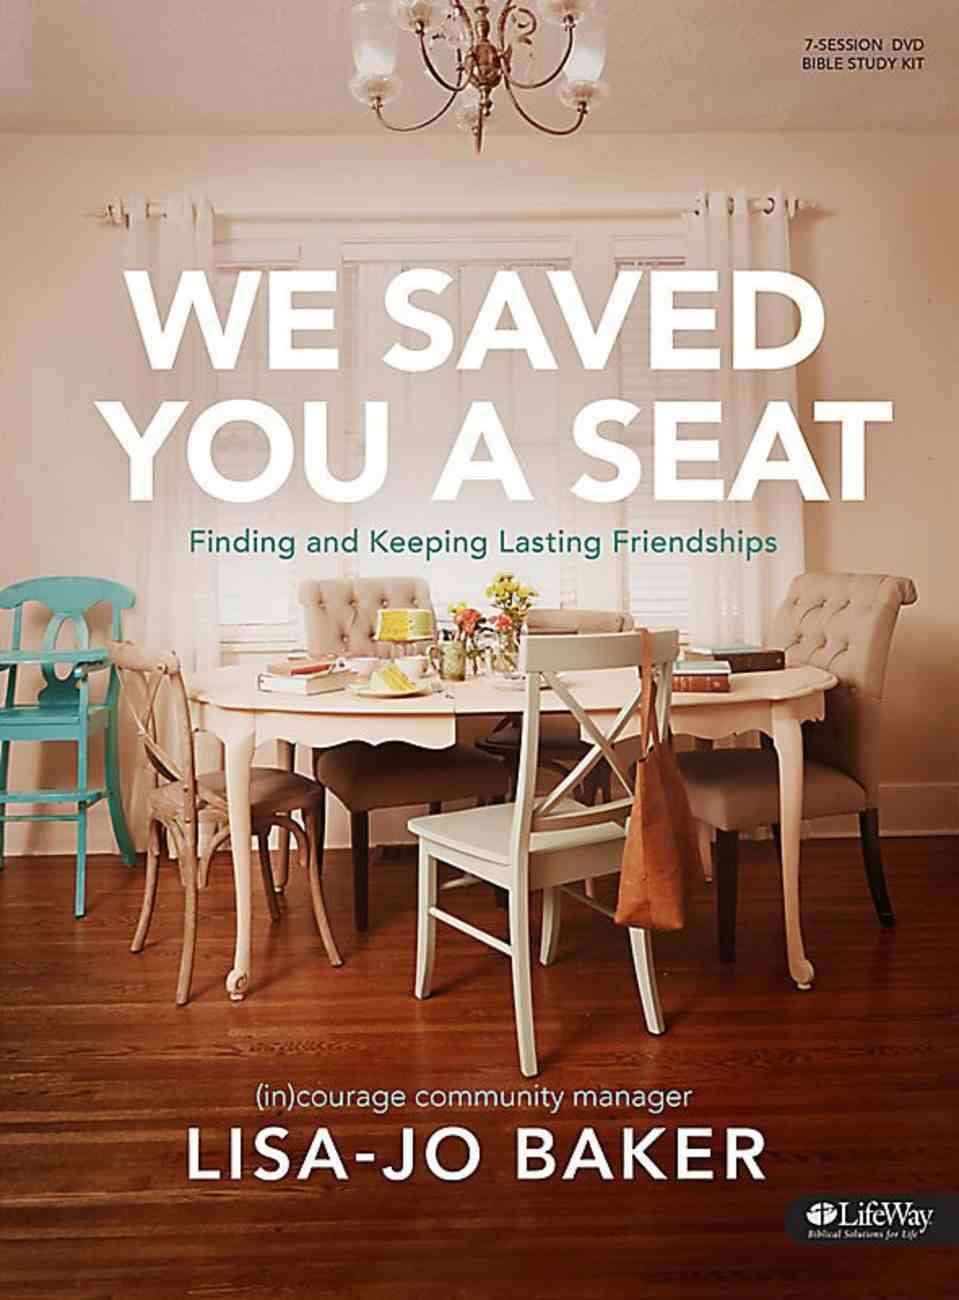 We Saved You a Seat (2 Dvds): Finding and Keeping Lasting Friendships (Dvd Only Set) DVD